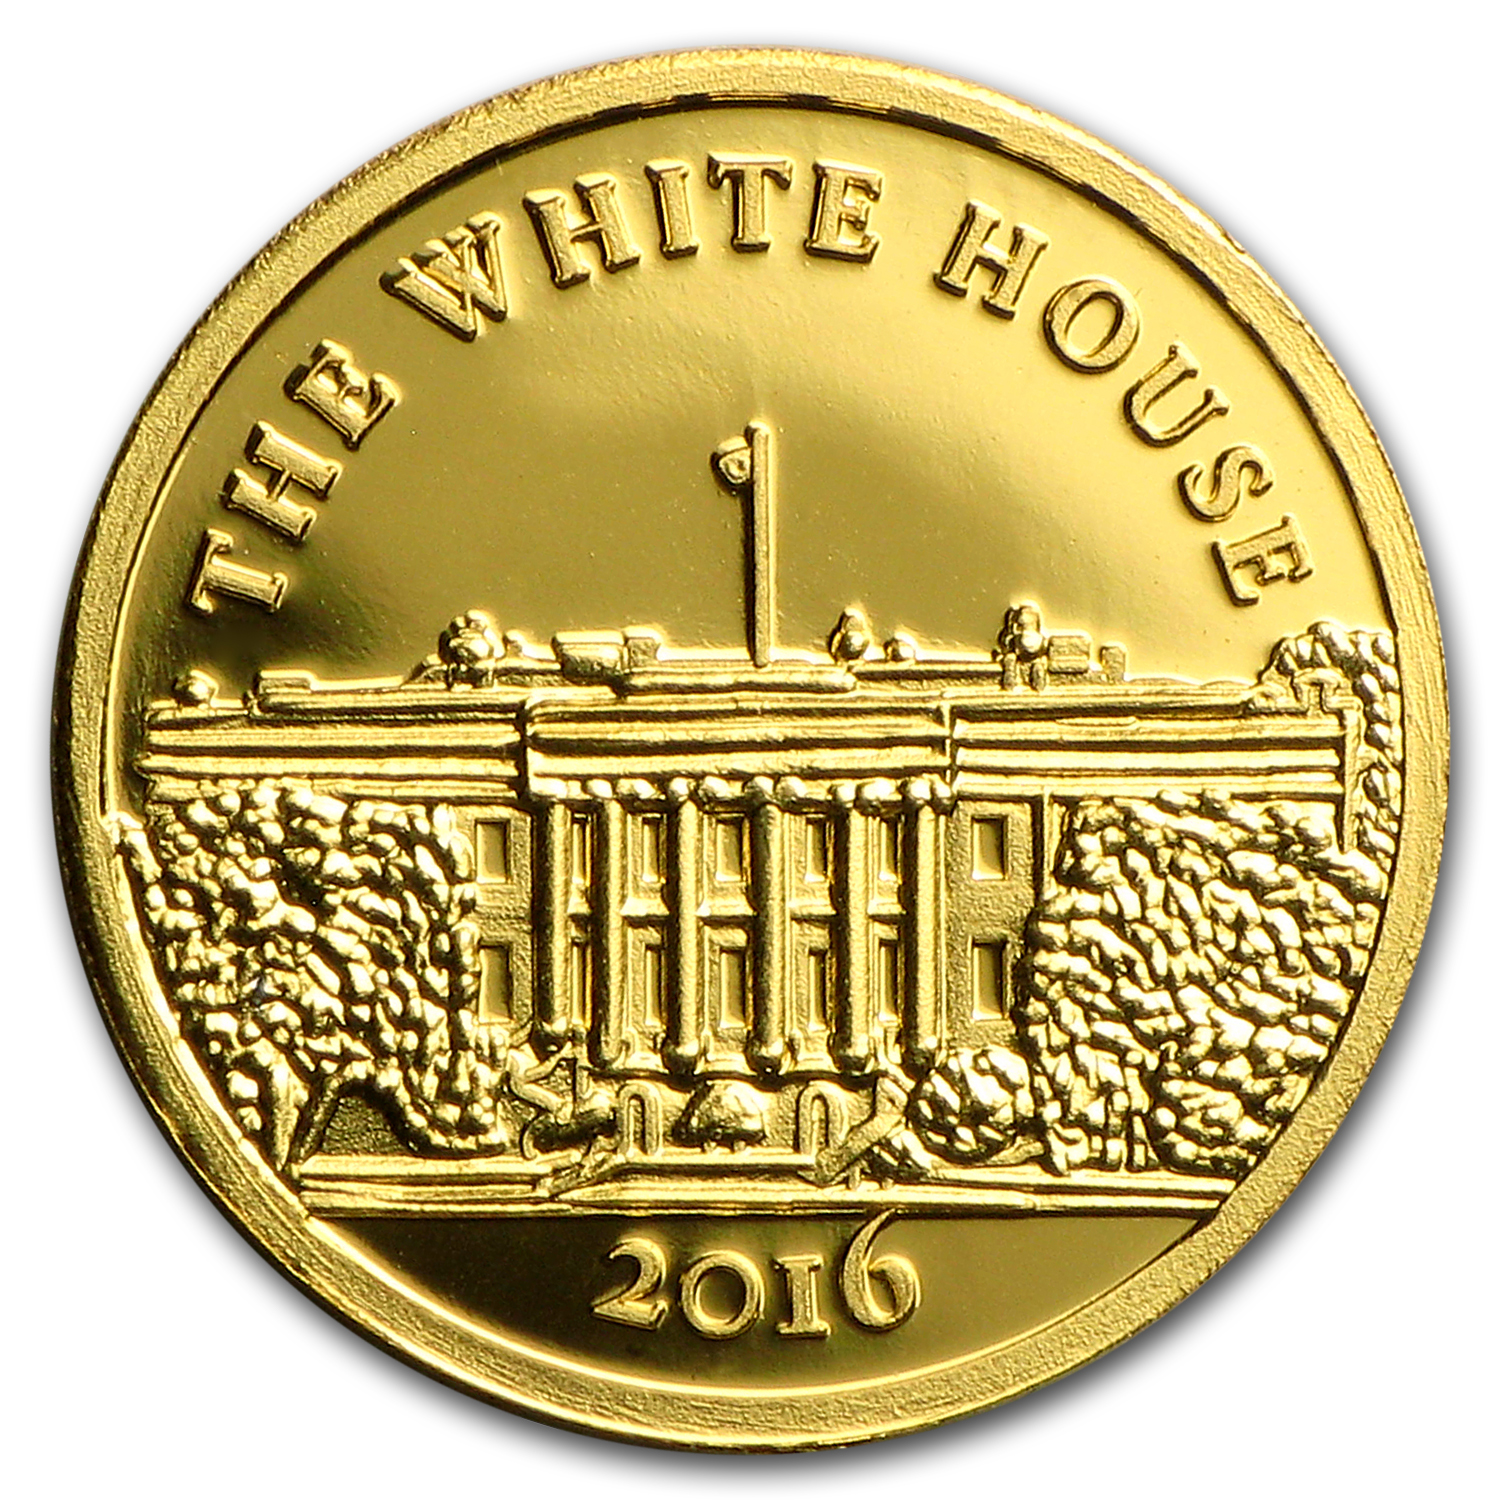 2016 Guinea Gold 100 Francs U.S. White House Proof Coin